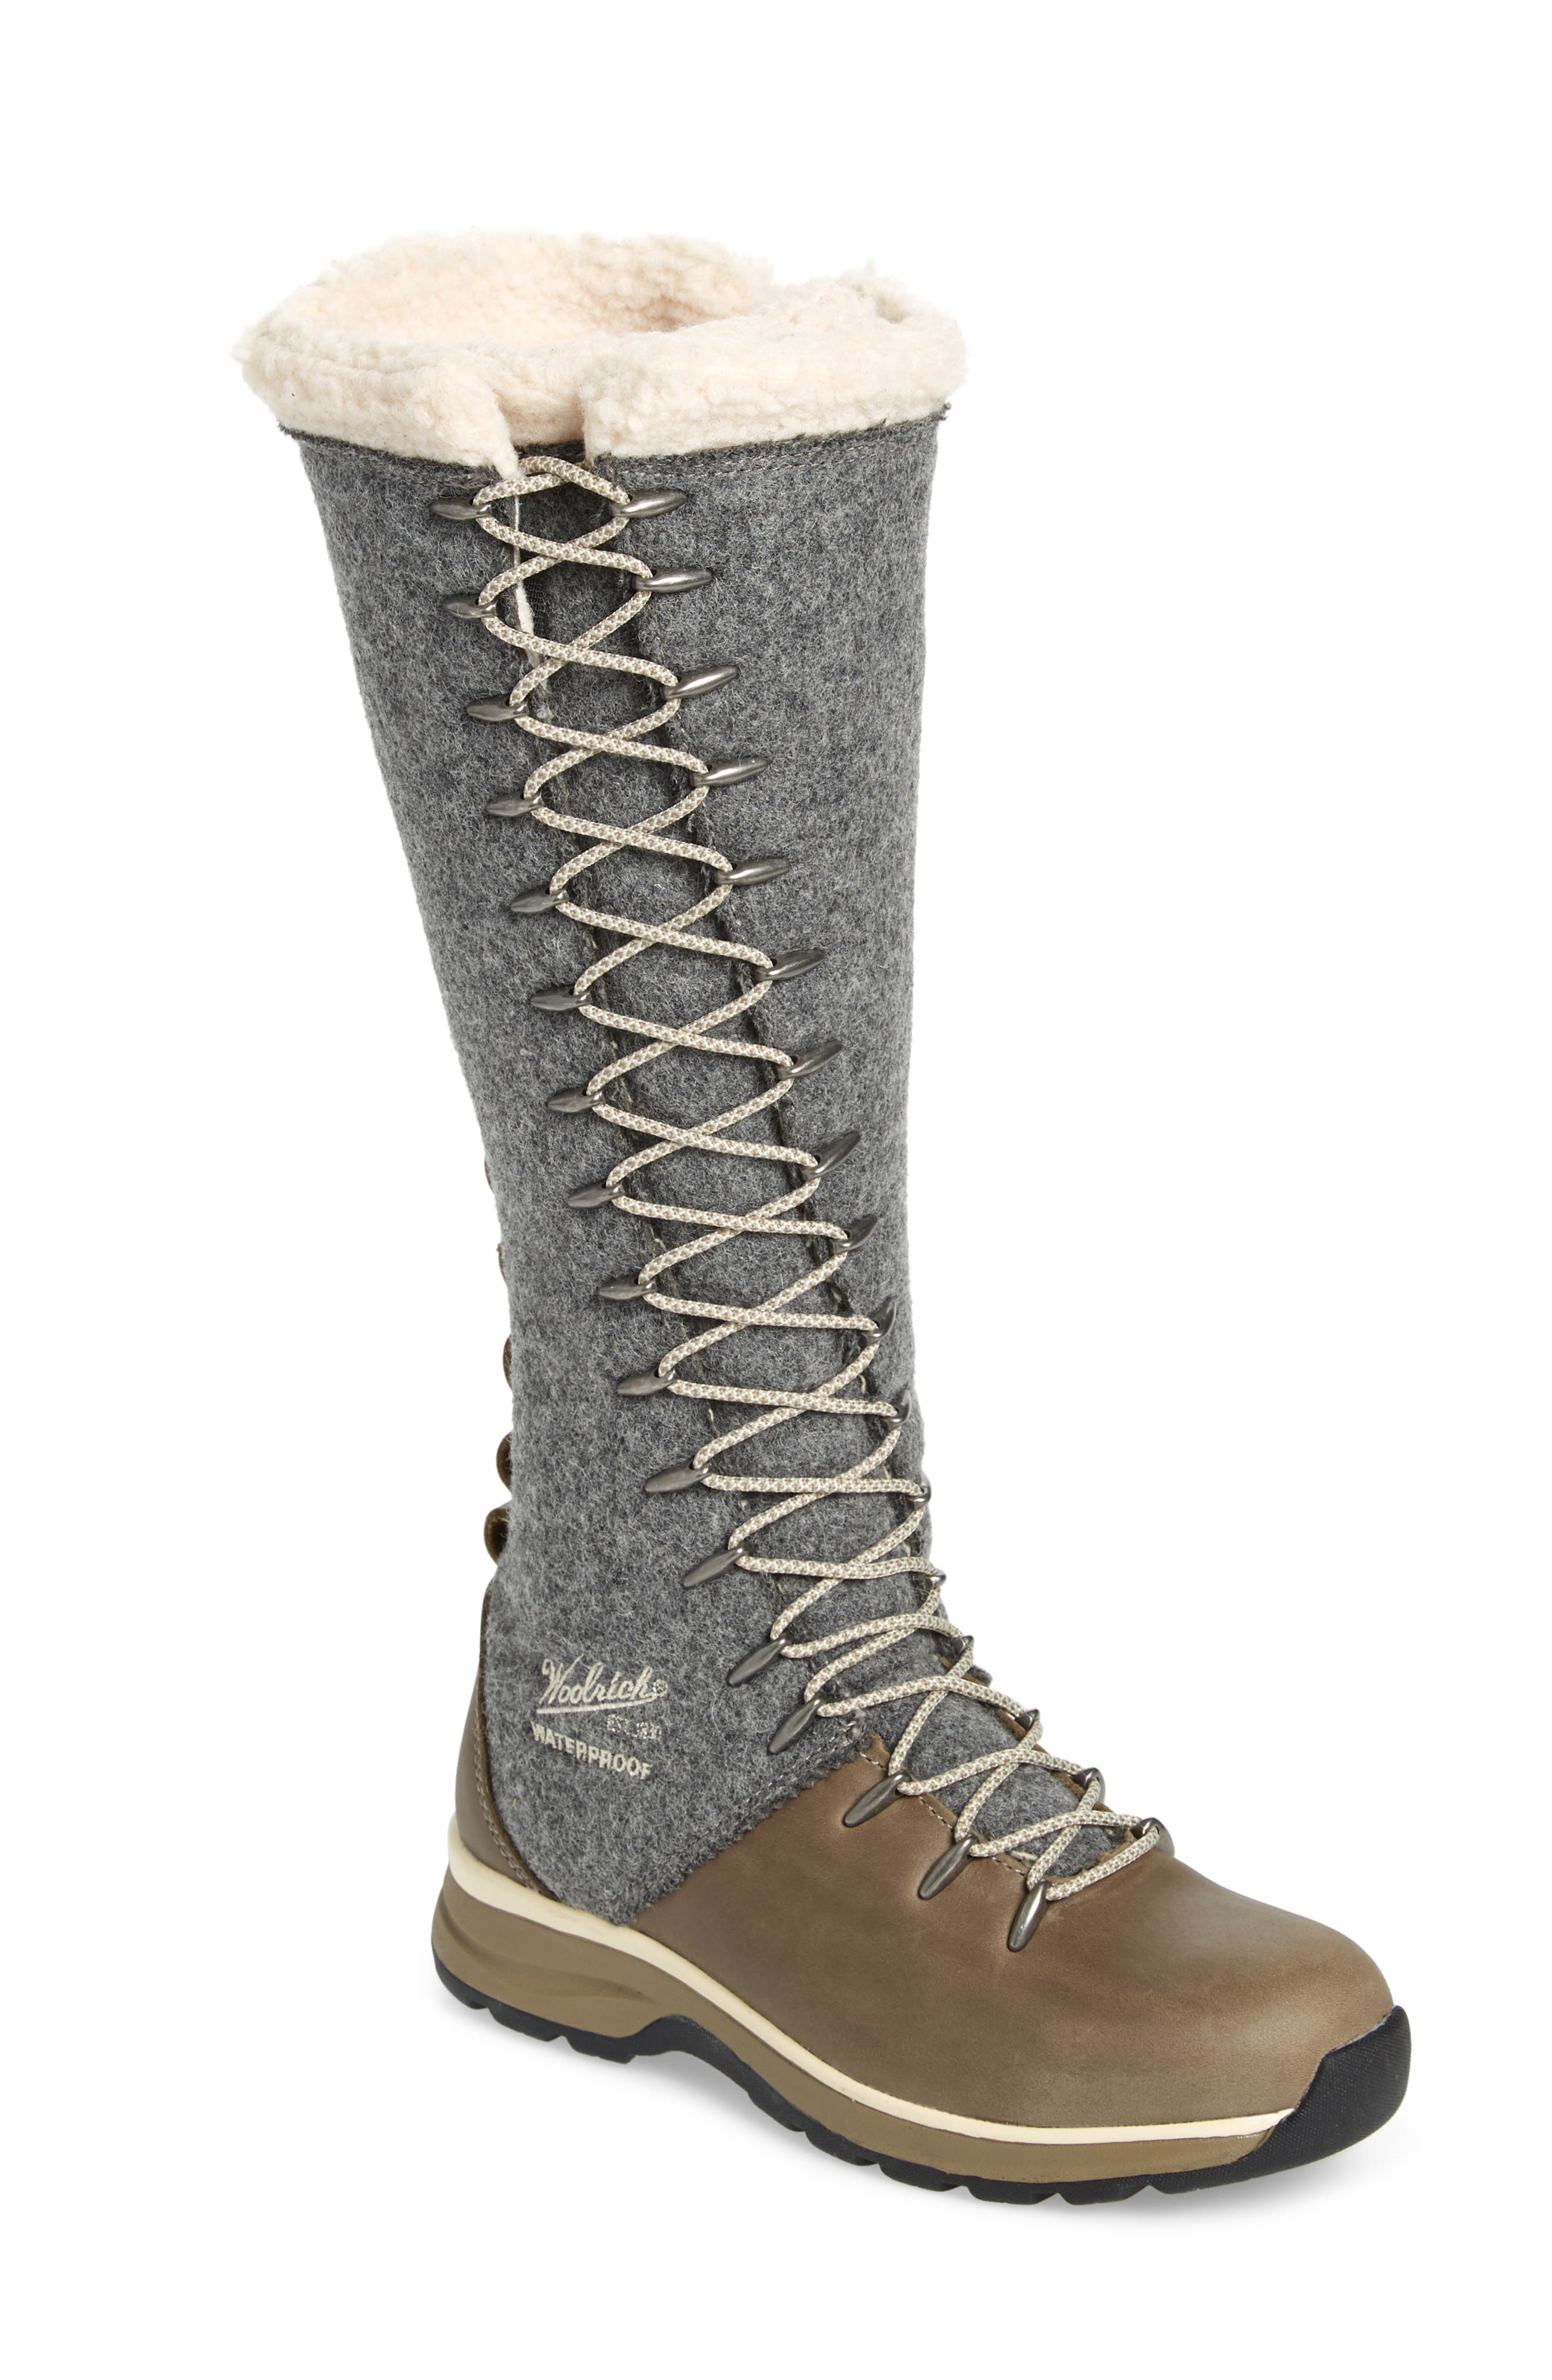 Woolrich Crazy Rockies Iii Lace-Up Knee High Boot